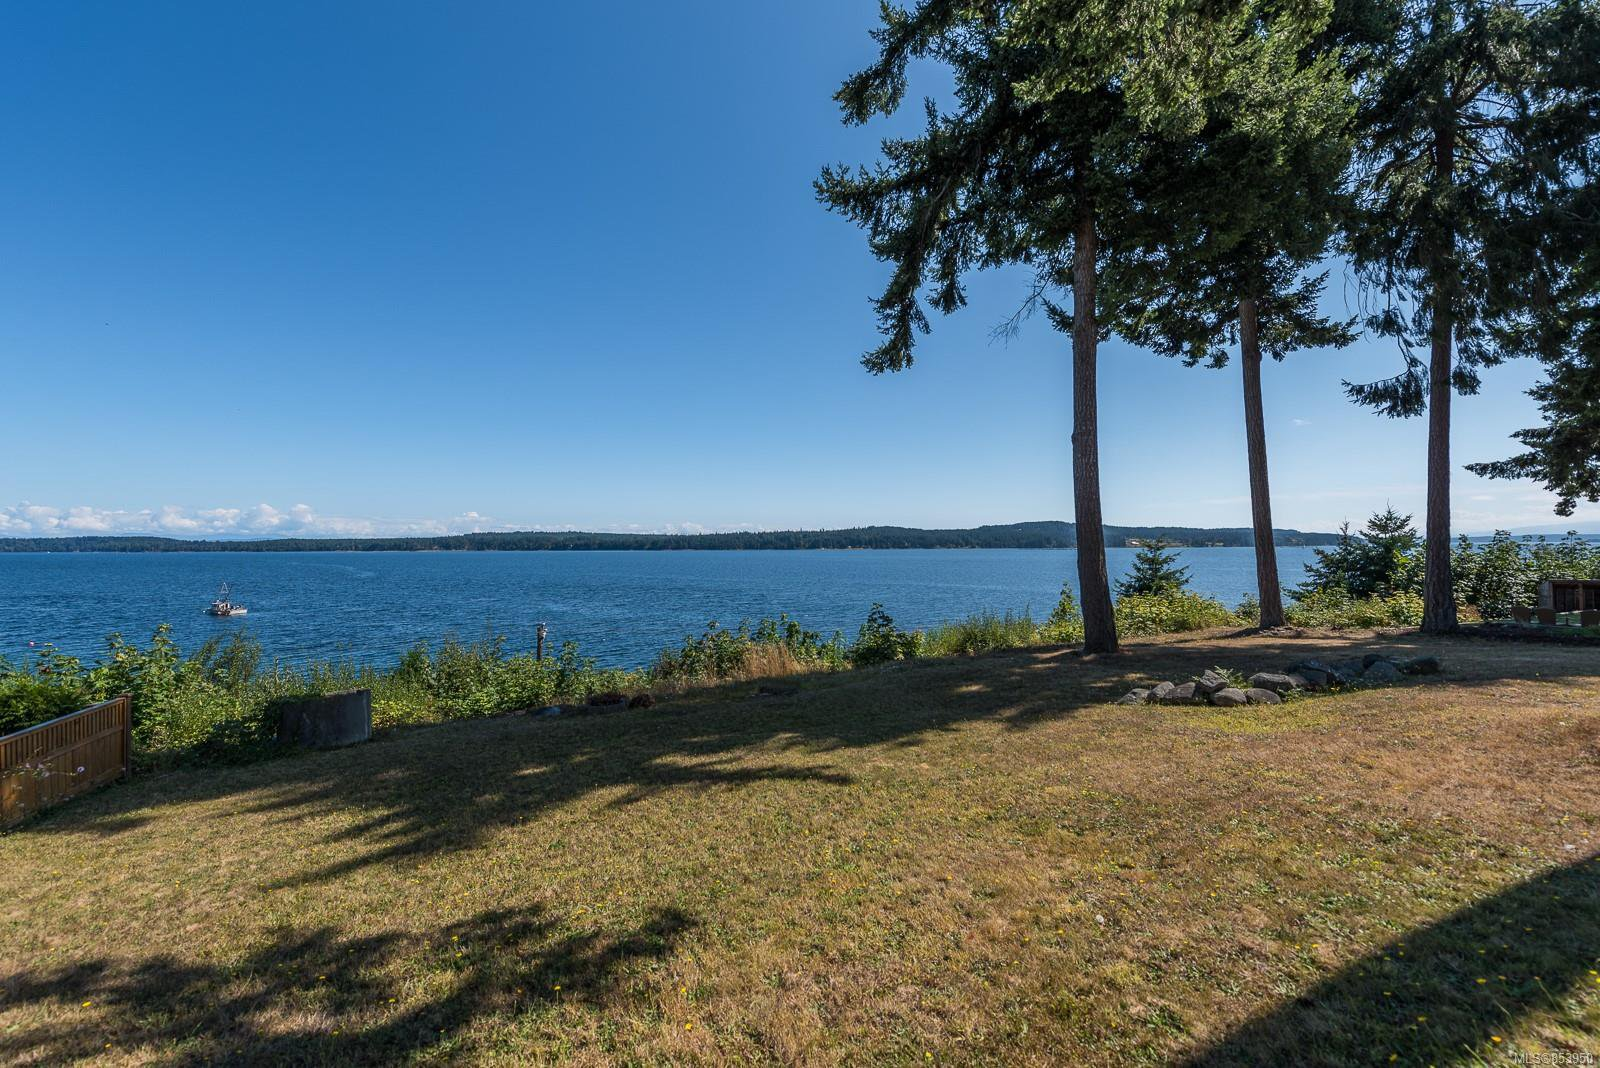 Photo 10: Photos: 5880 GARVIN Rd in : CV Union Bay/Fanny Bay House for sale (Comox Valley)  : MLS®# 853950